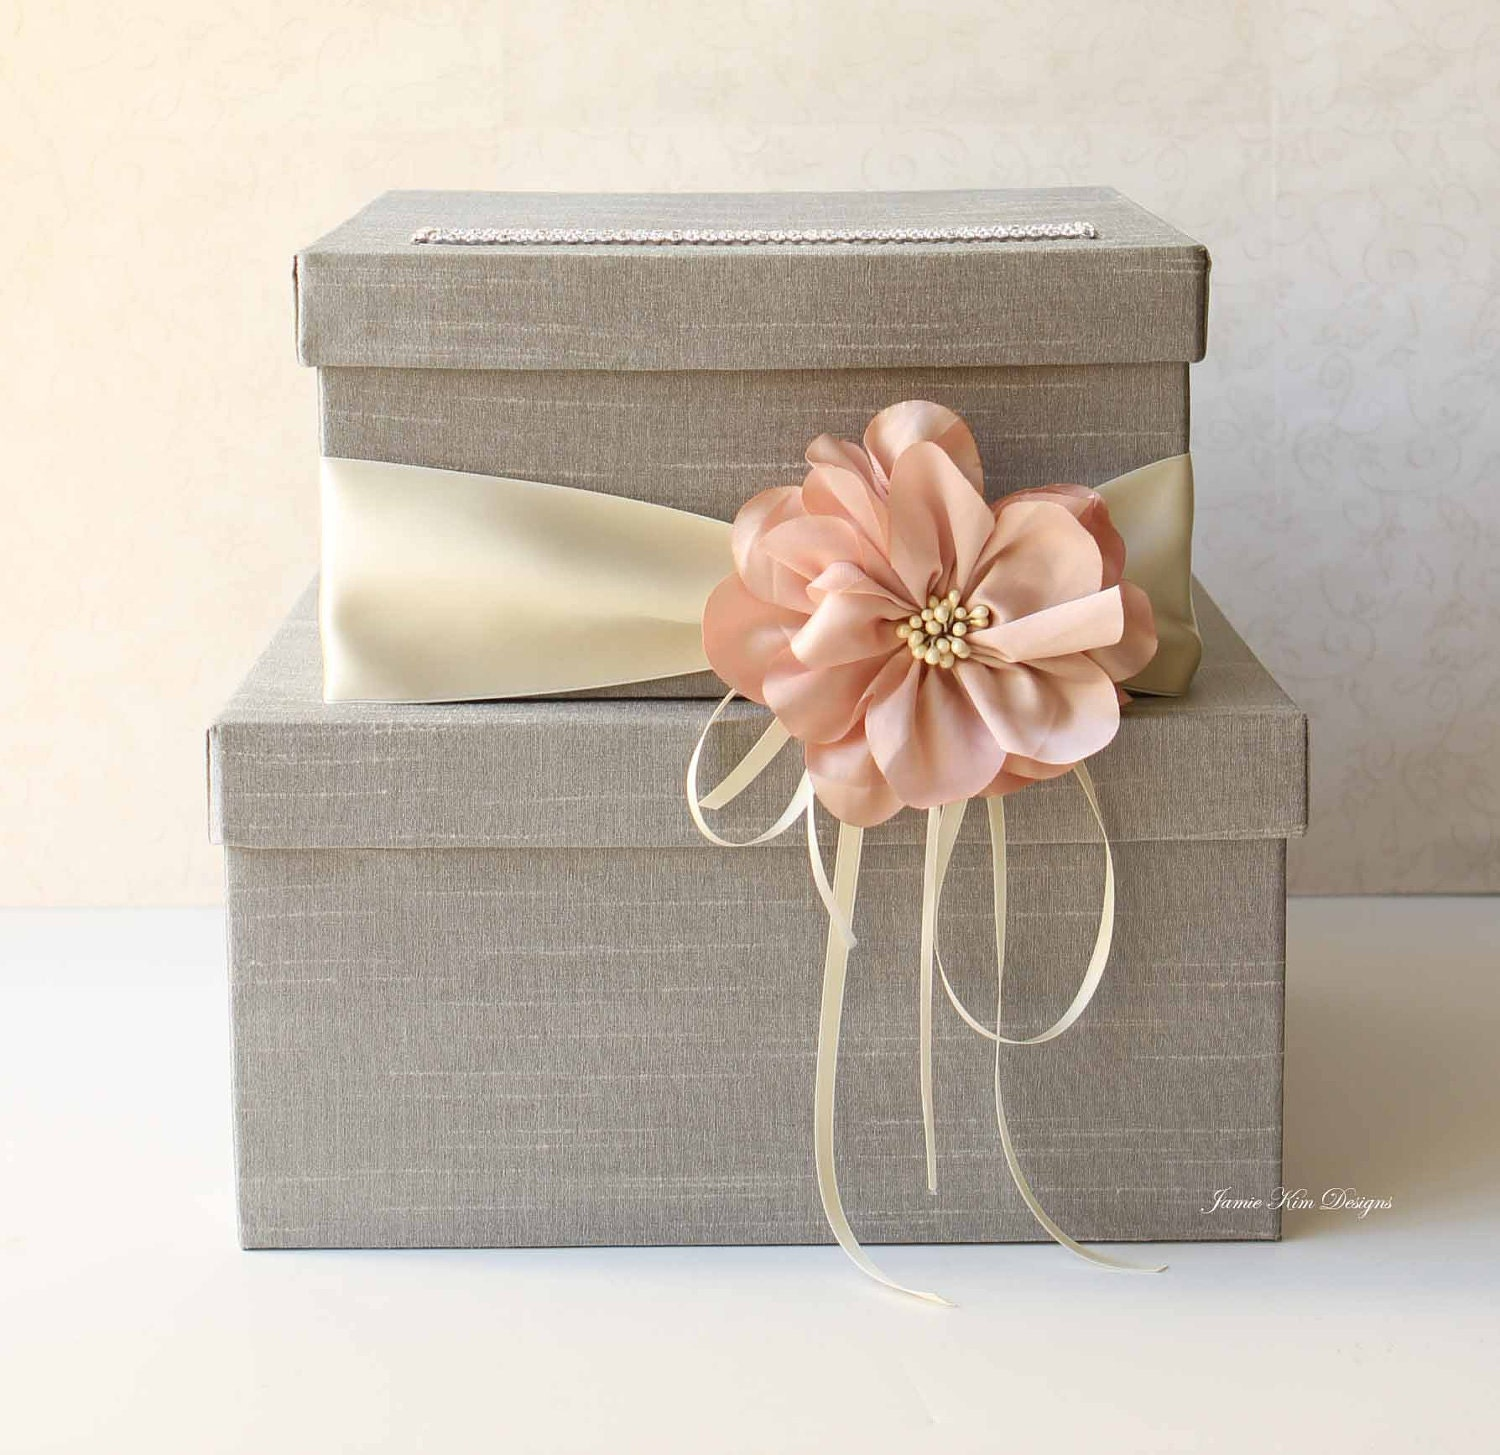 Money For Wedding Gift Cash Or Check : Wedding Card Box Wedding Money Box Gift Card by jamiekimdesigns